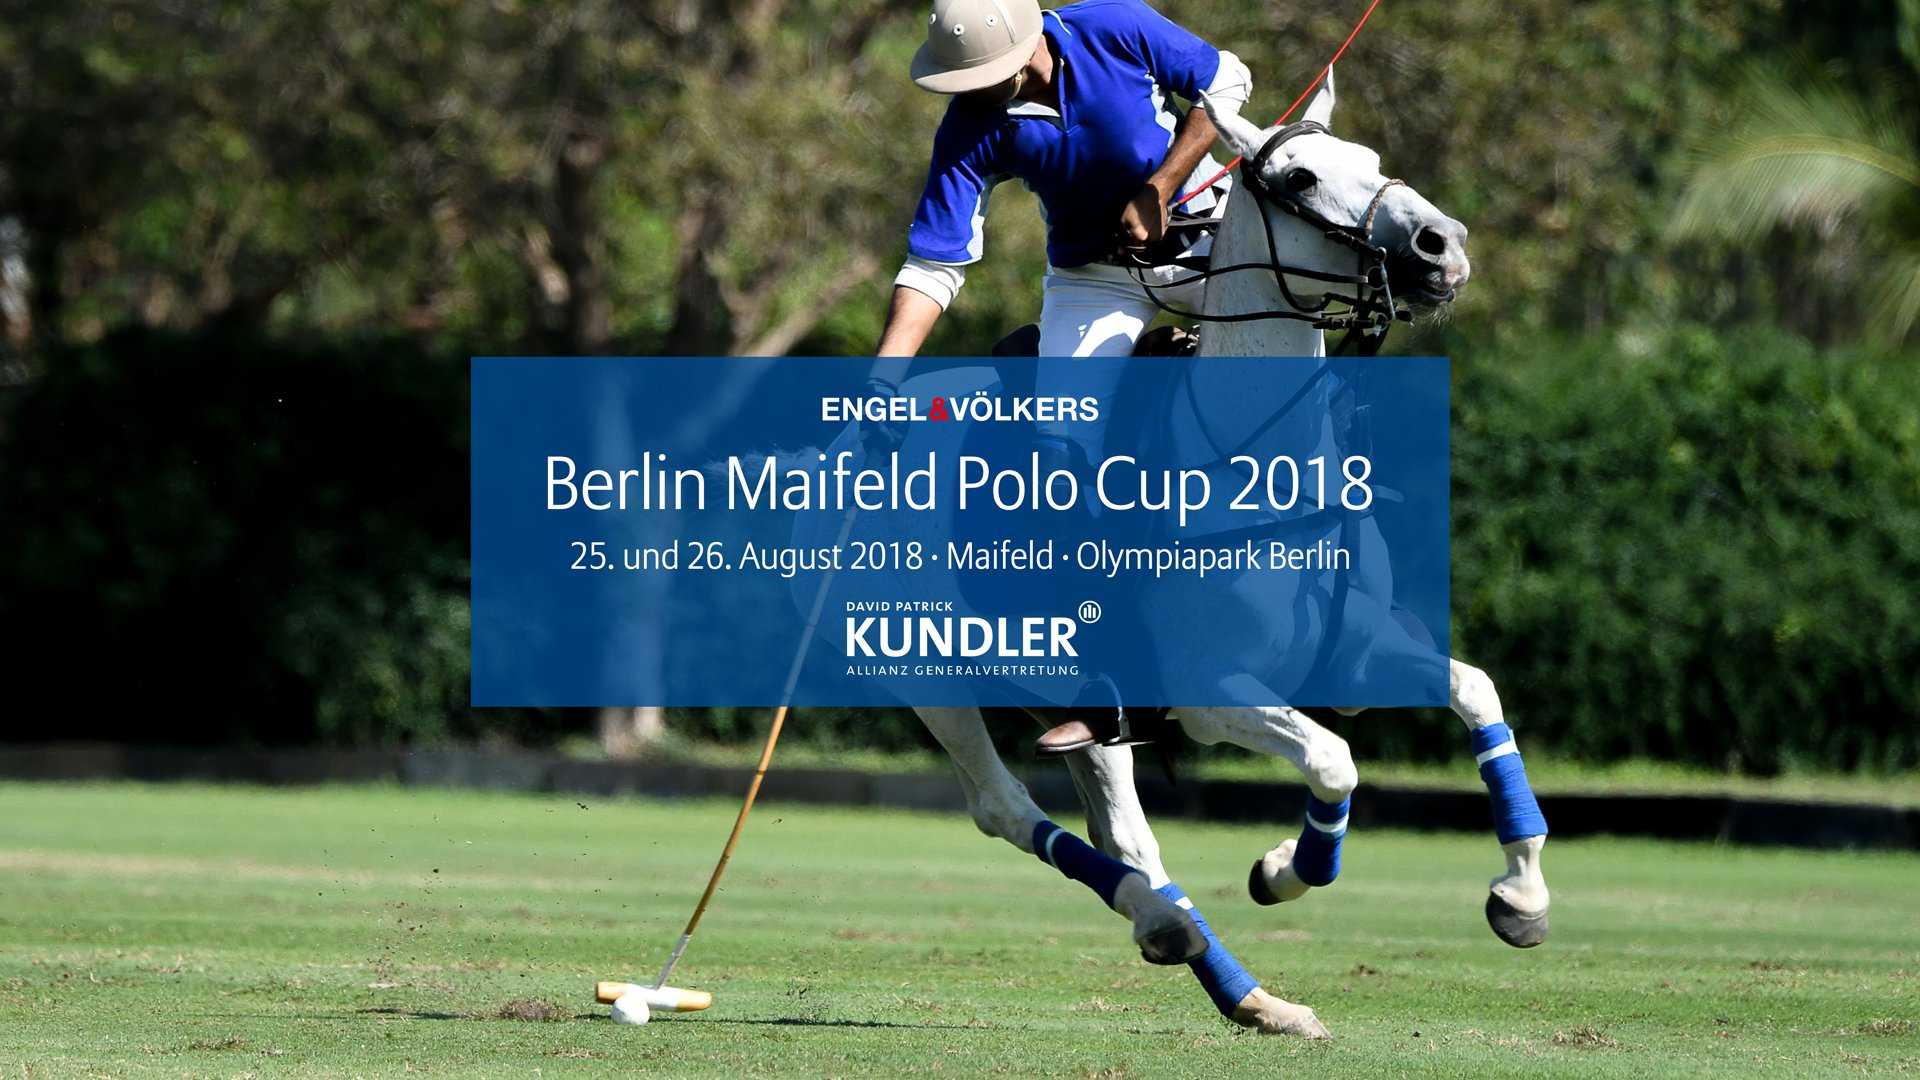 maifeld polo cup berlin 2018 allianz versicherung berlin. Black Bedroom Furniture Sets. Home Design Ideas